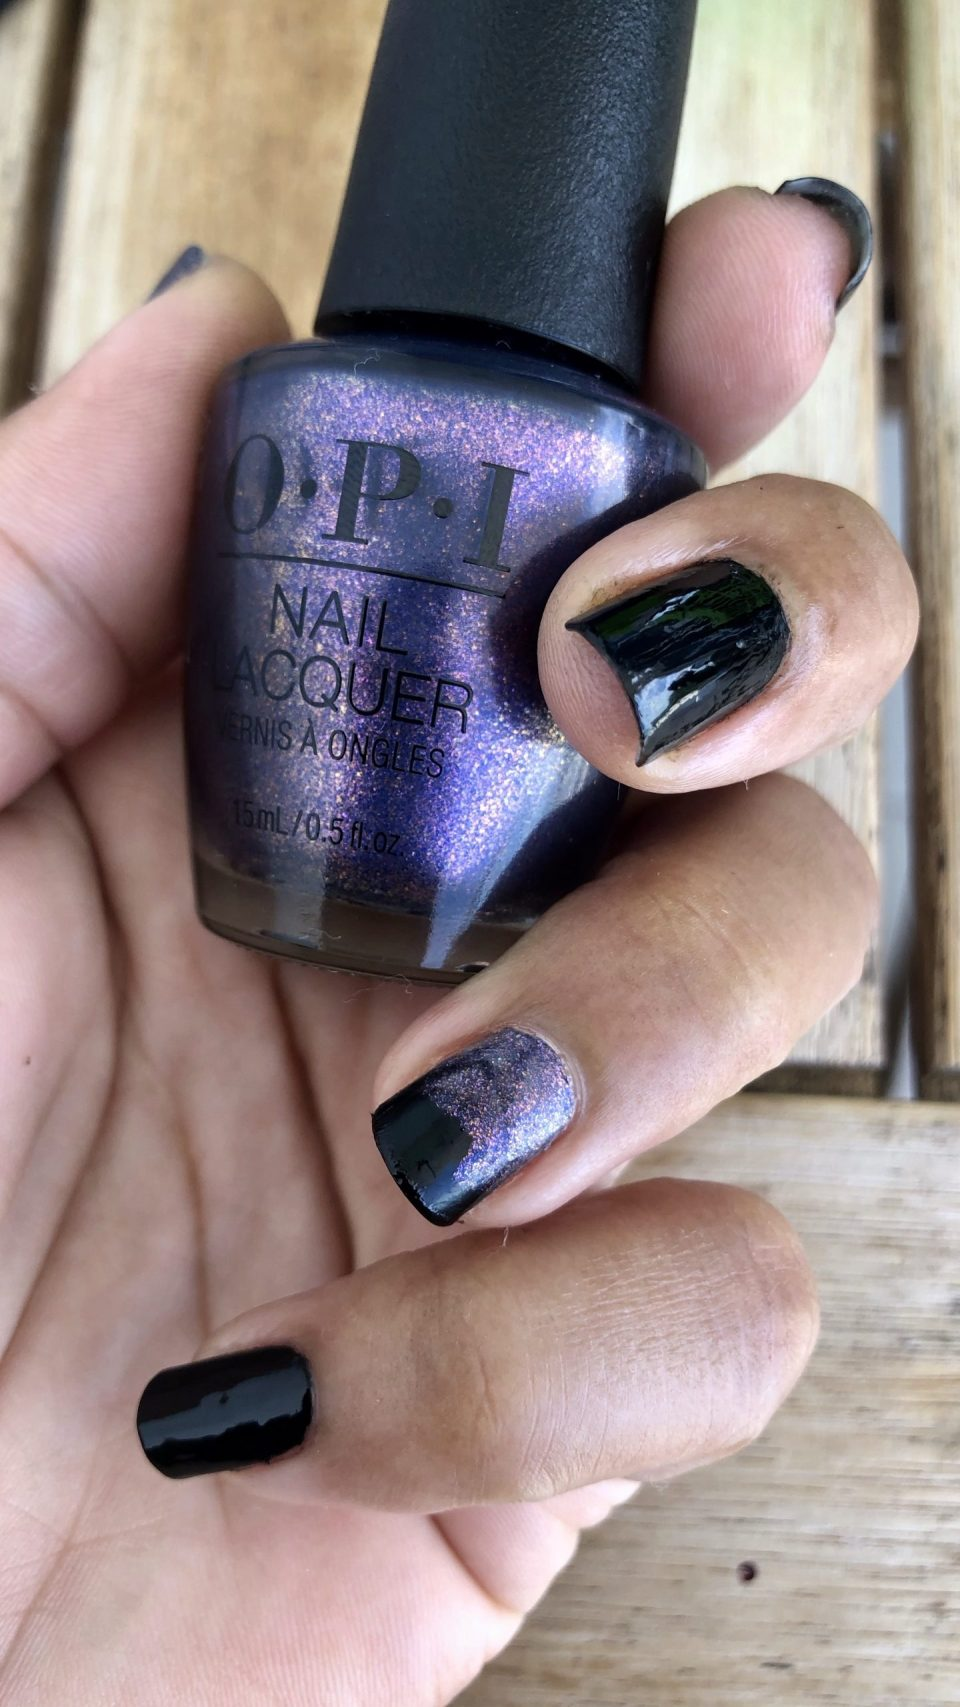 Beauty: Four Fall Nail Designs You Can DIY